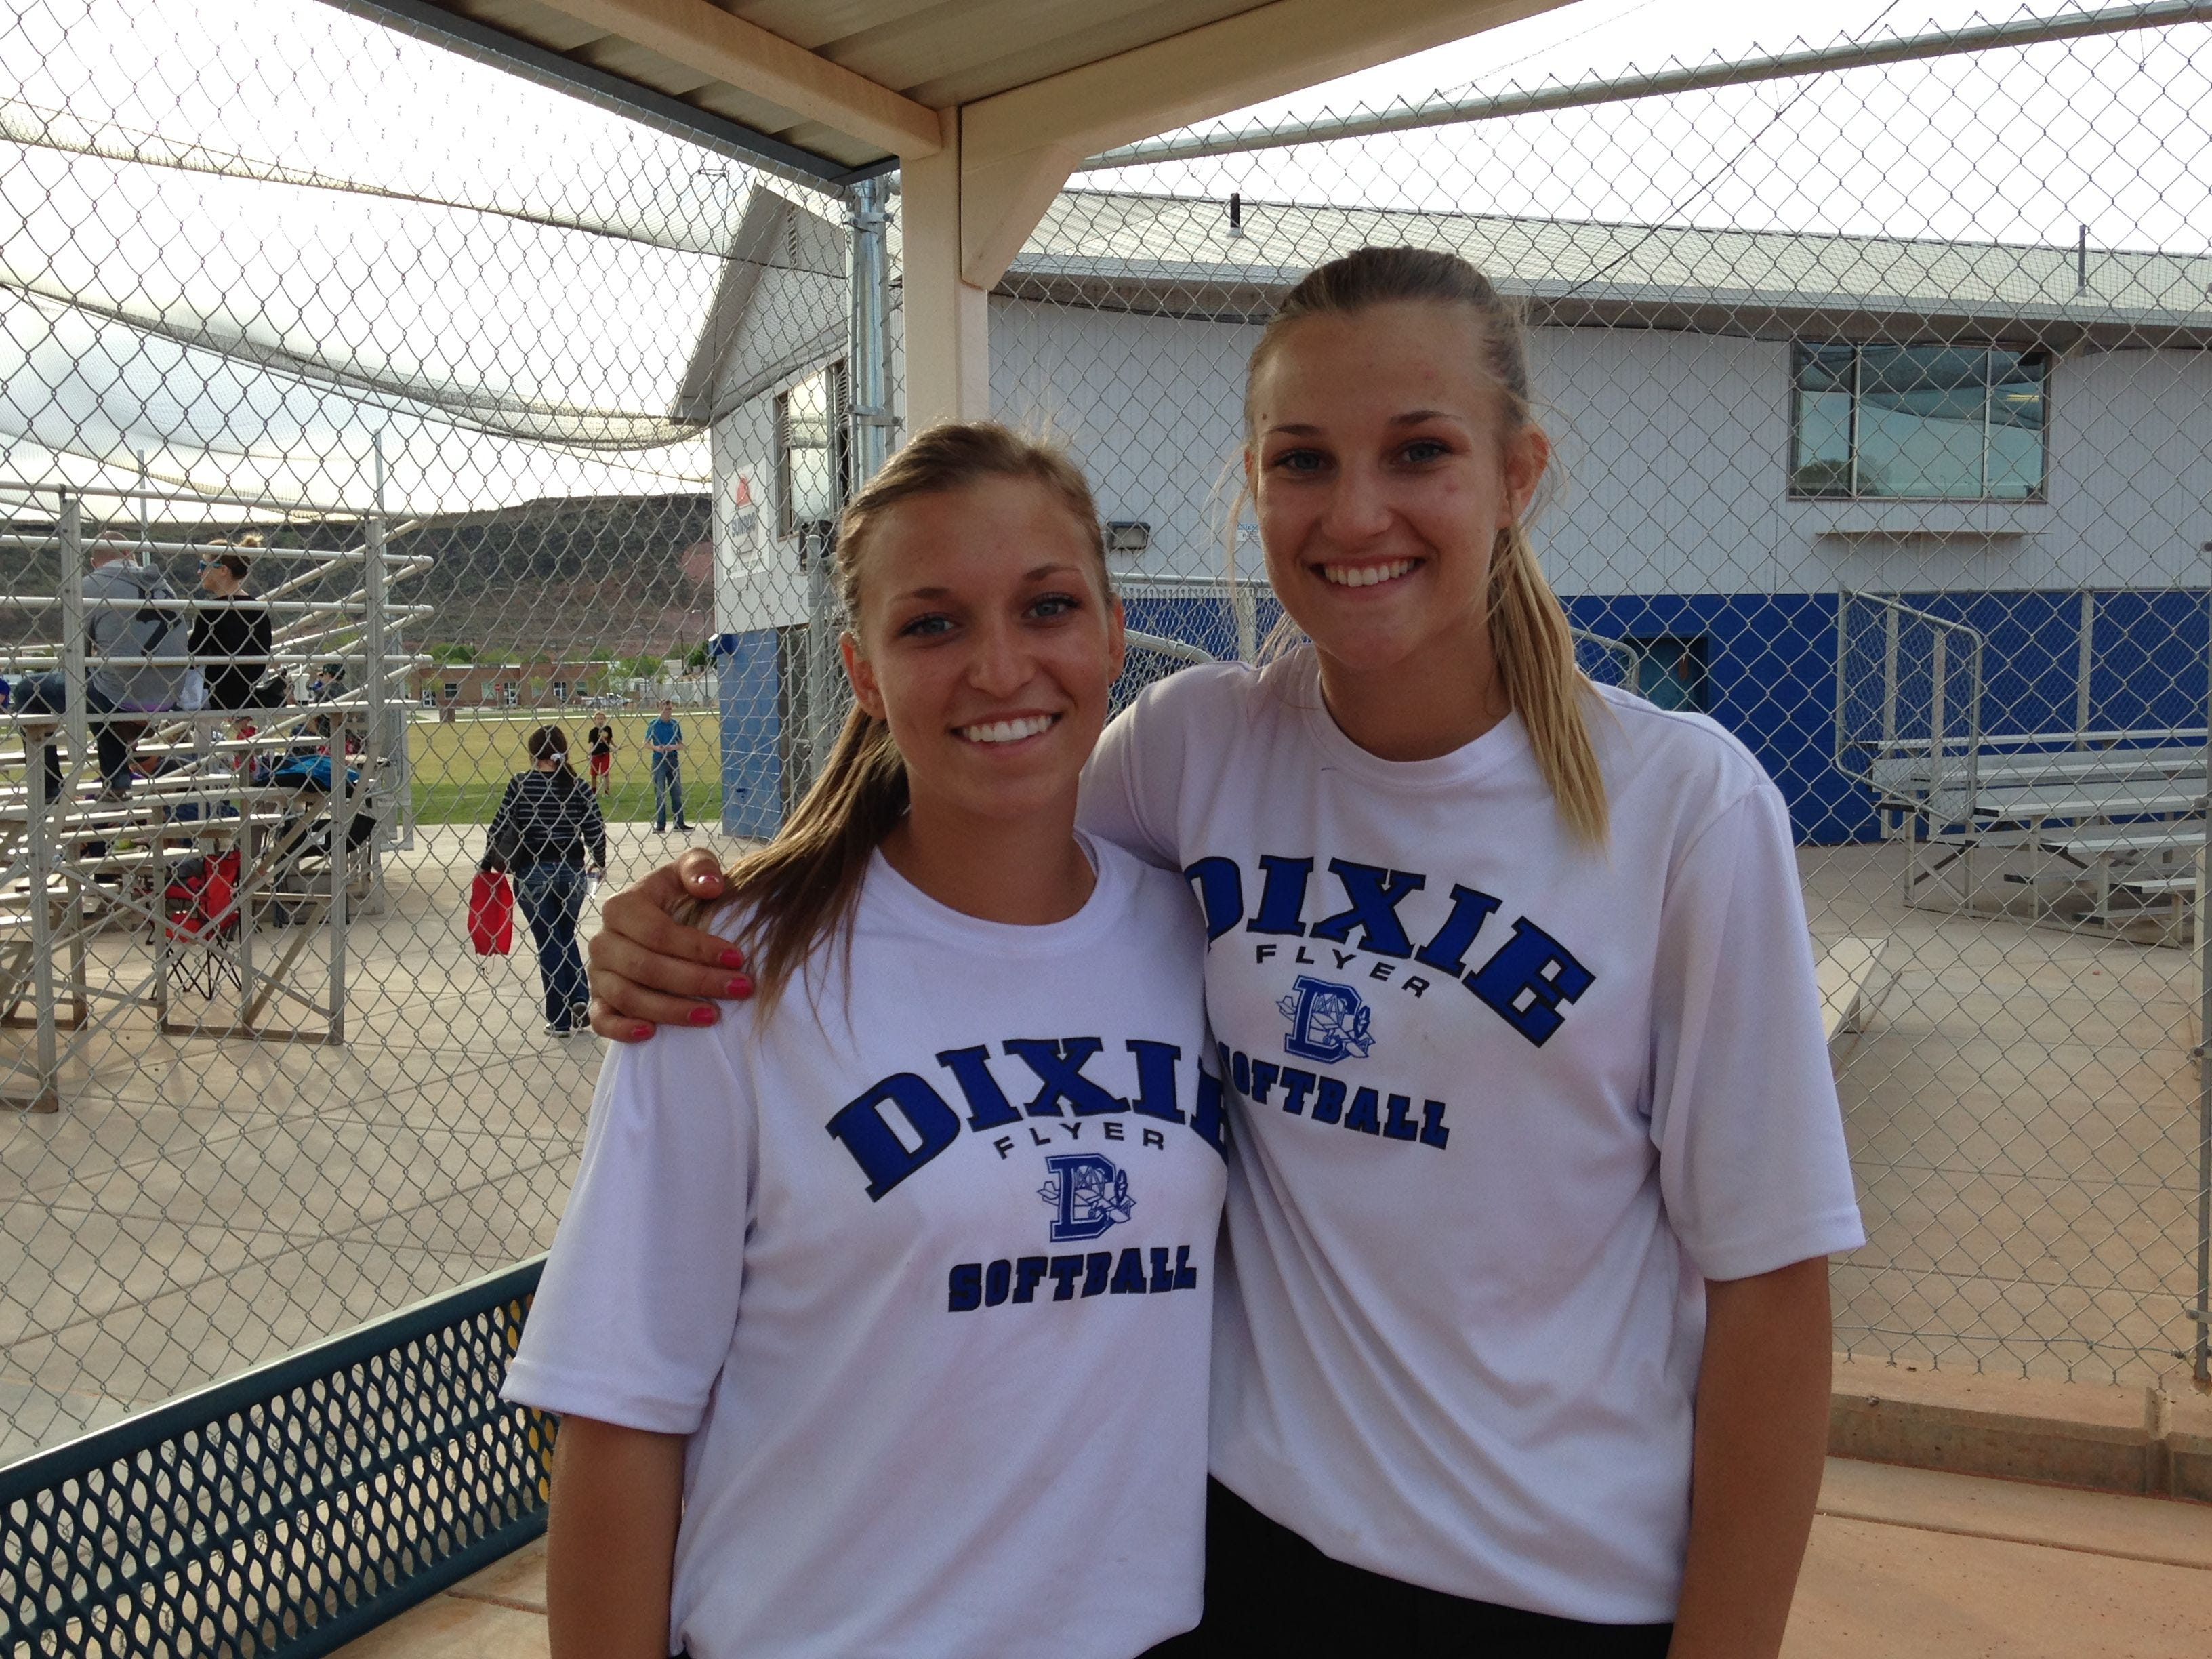 Shaunna (left) and Stacia Gelter are twin sisters who play for Dixie High Softball. Their older sister, Sheila, plays for Dixie State University.